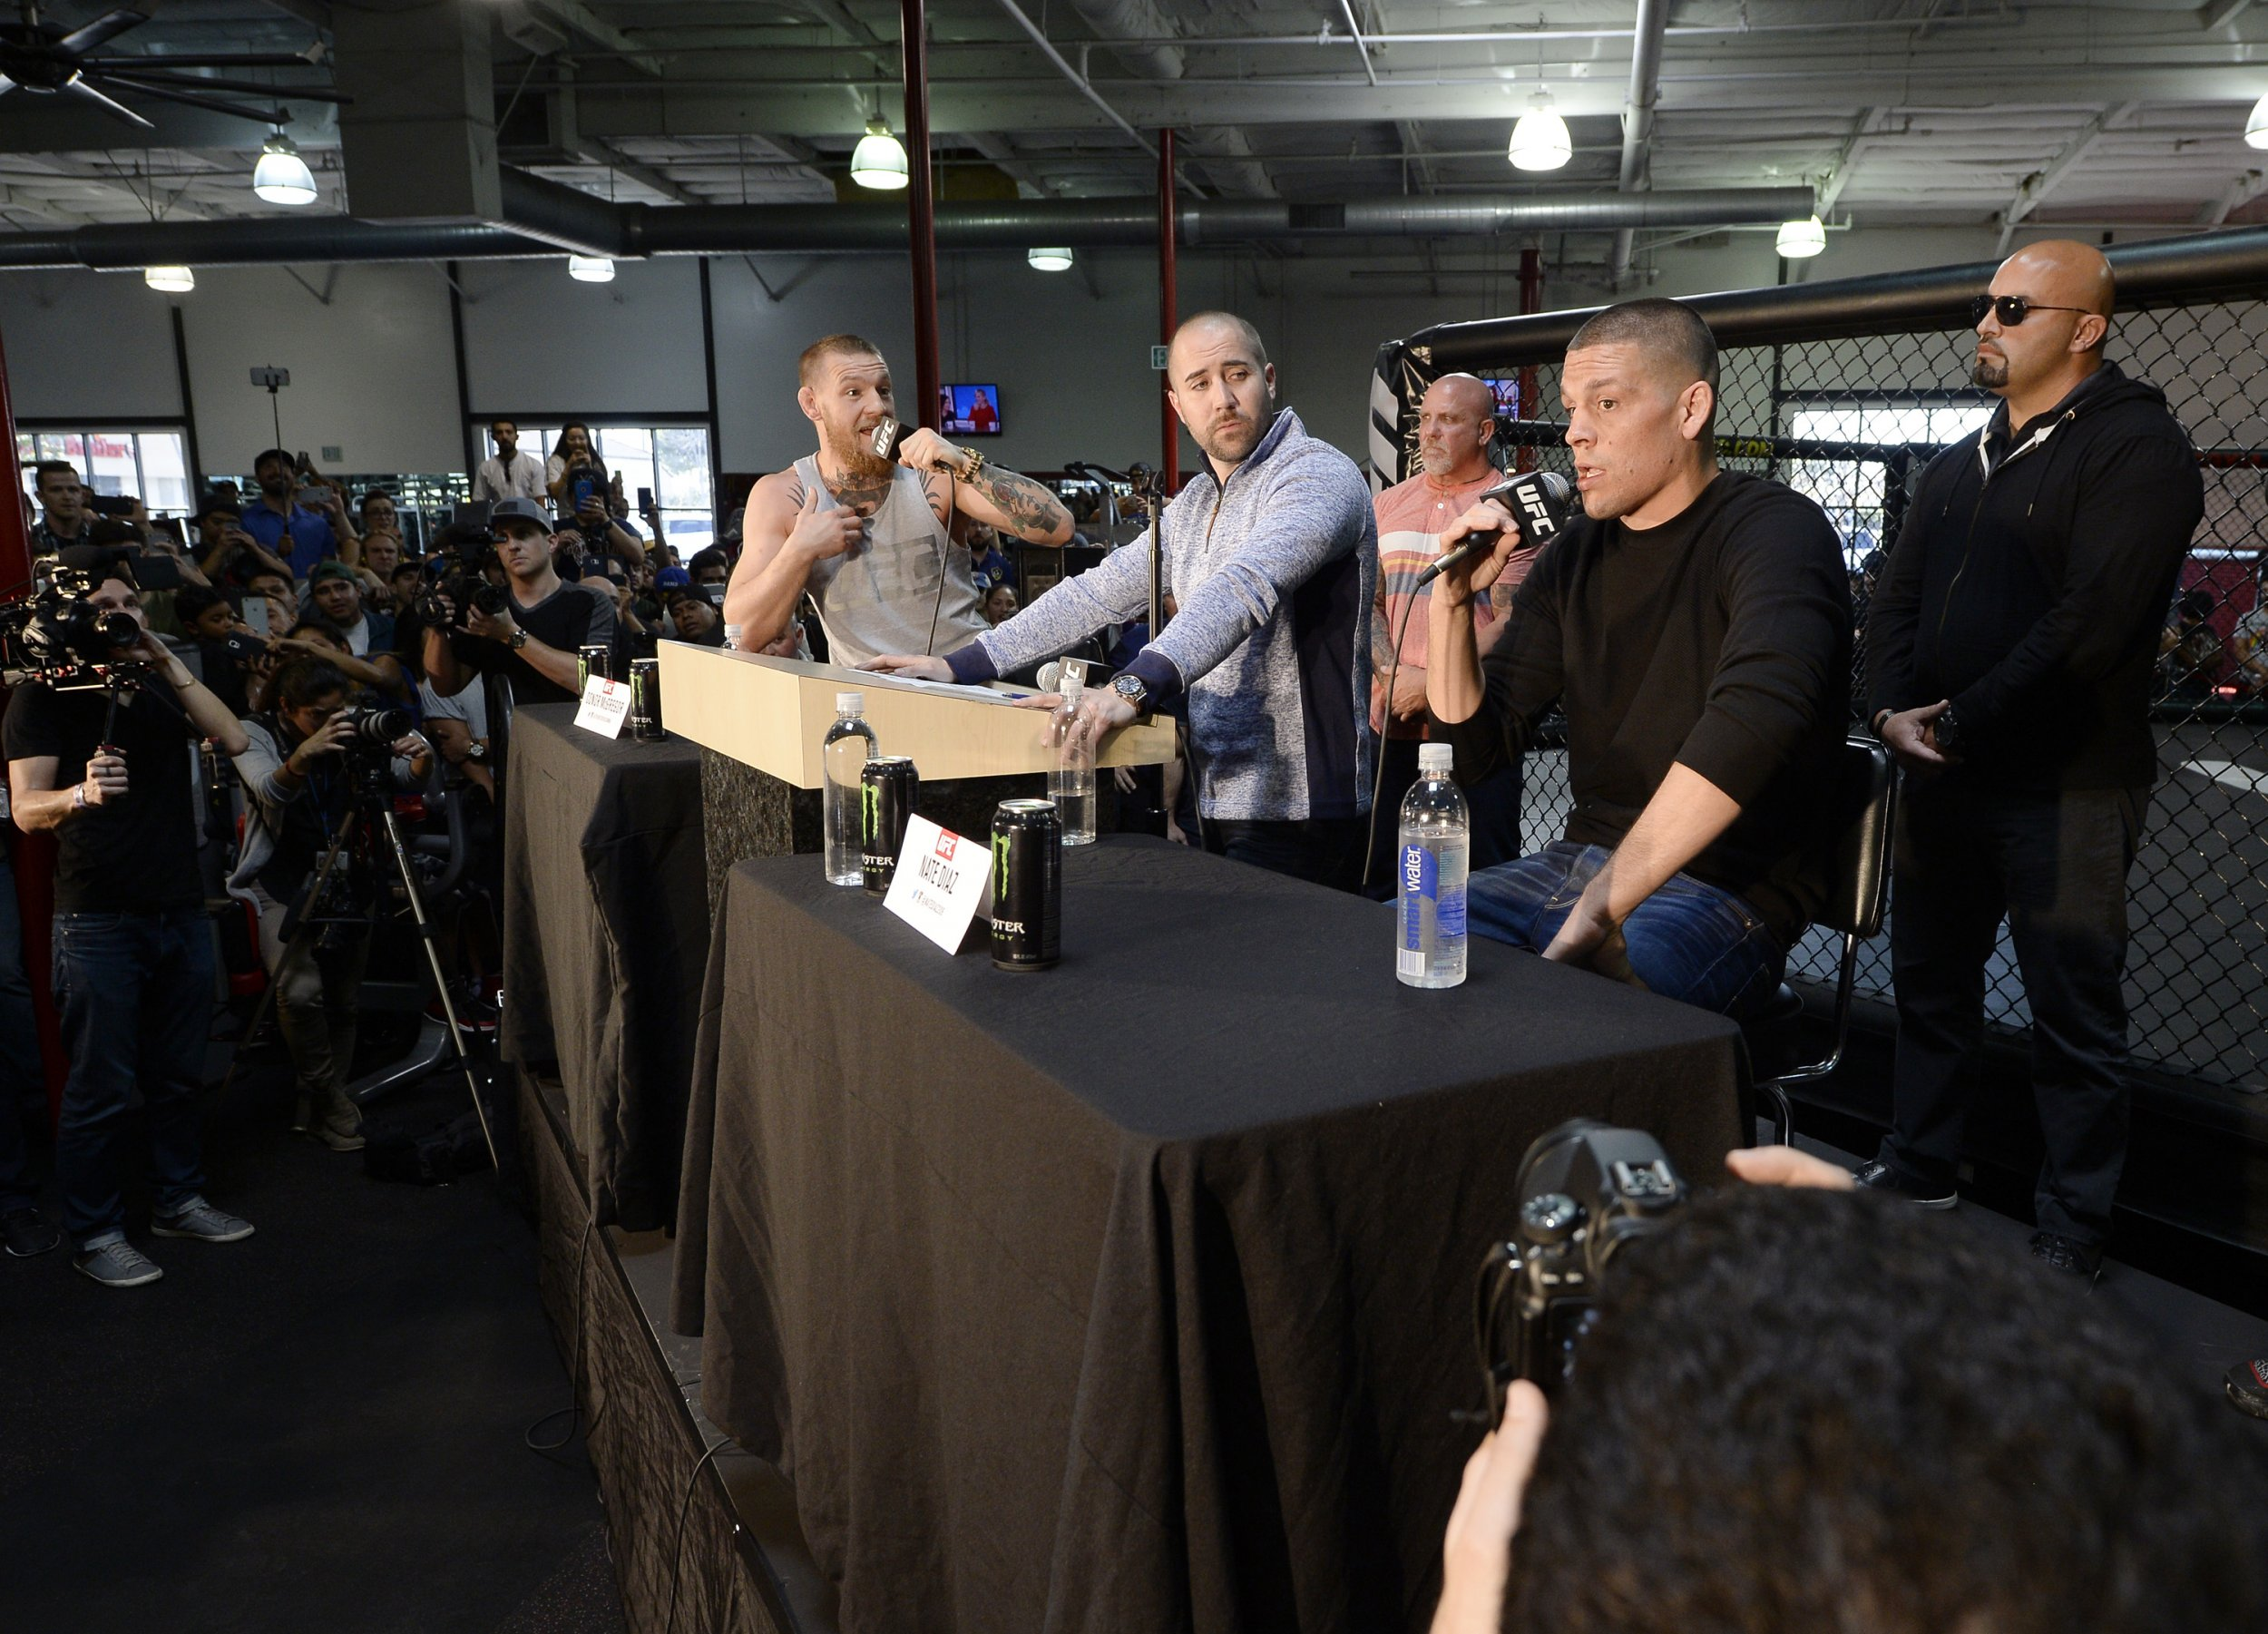 Conor McGregor, far left, with Nate Diaz, far right.